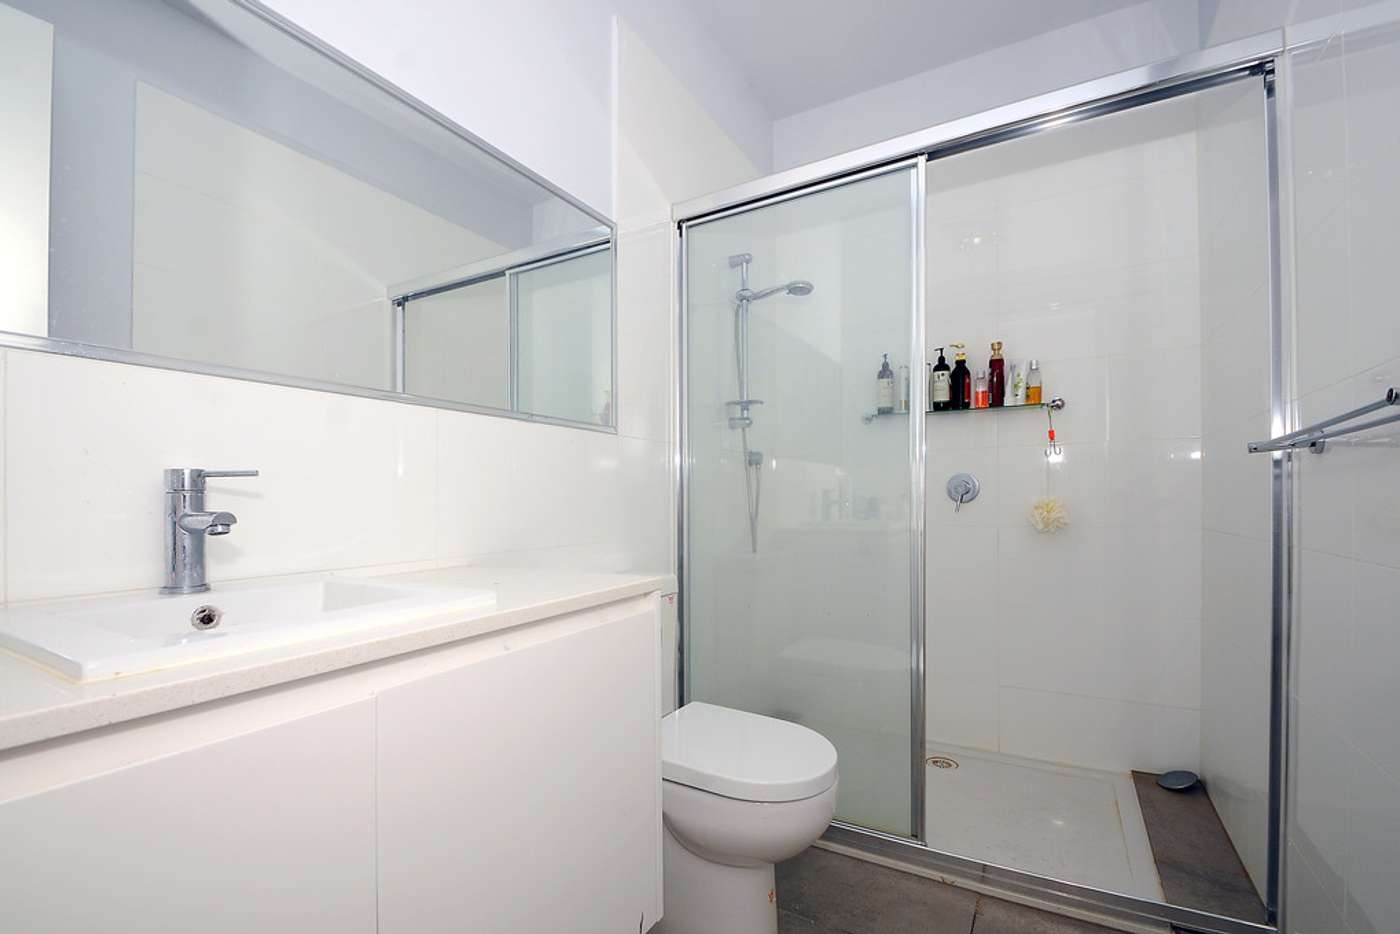 Sixth view of Homely unit listing, 6/9-11 Blantyre Avenue, Chelsea VIC 3196